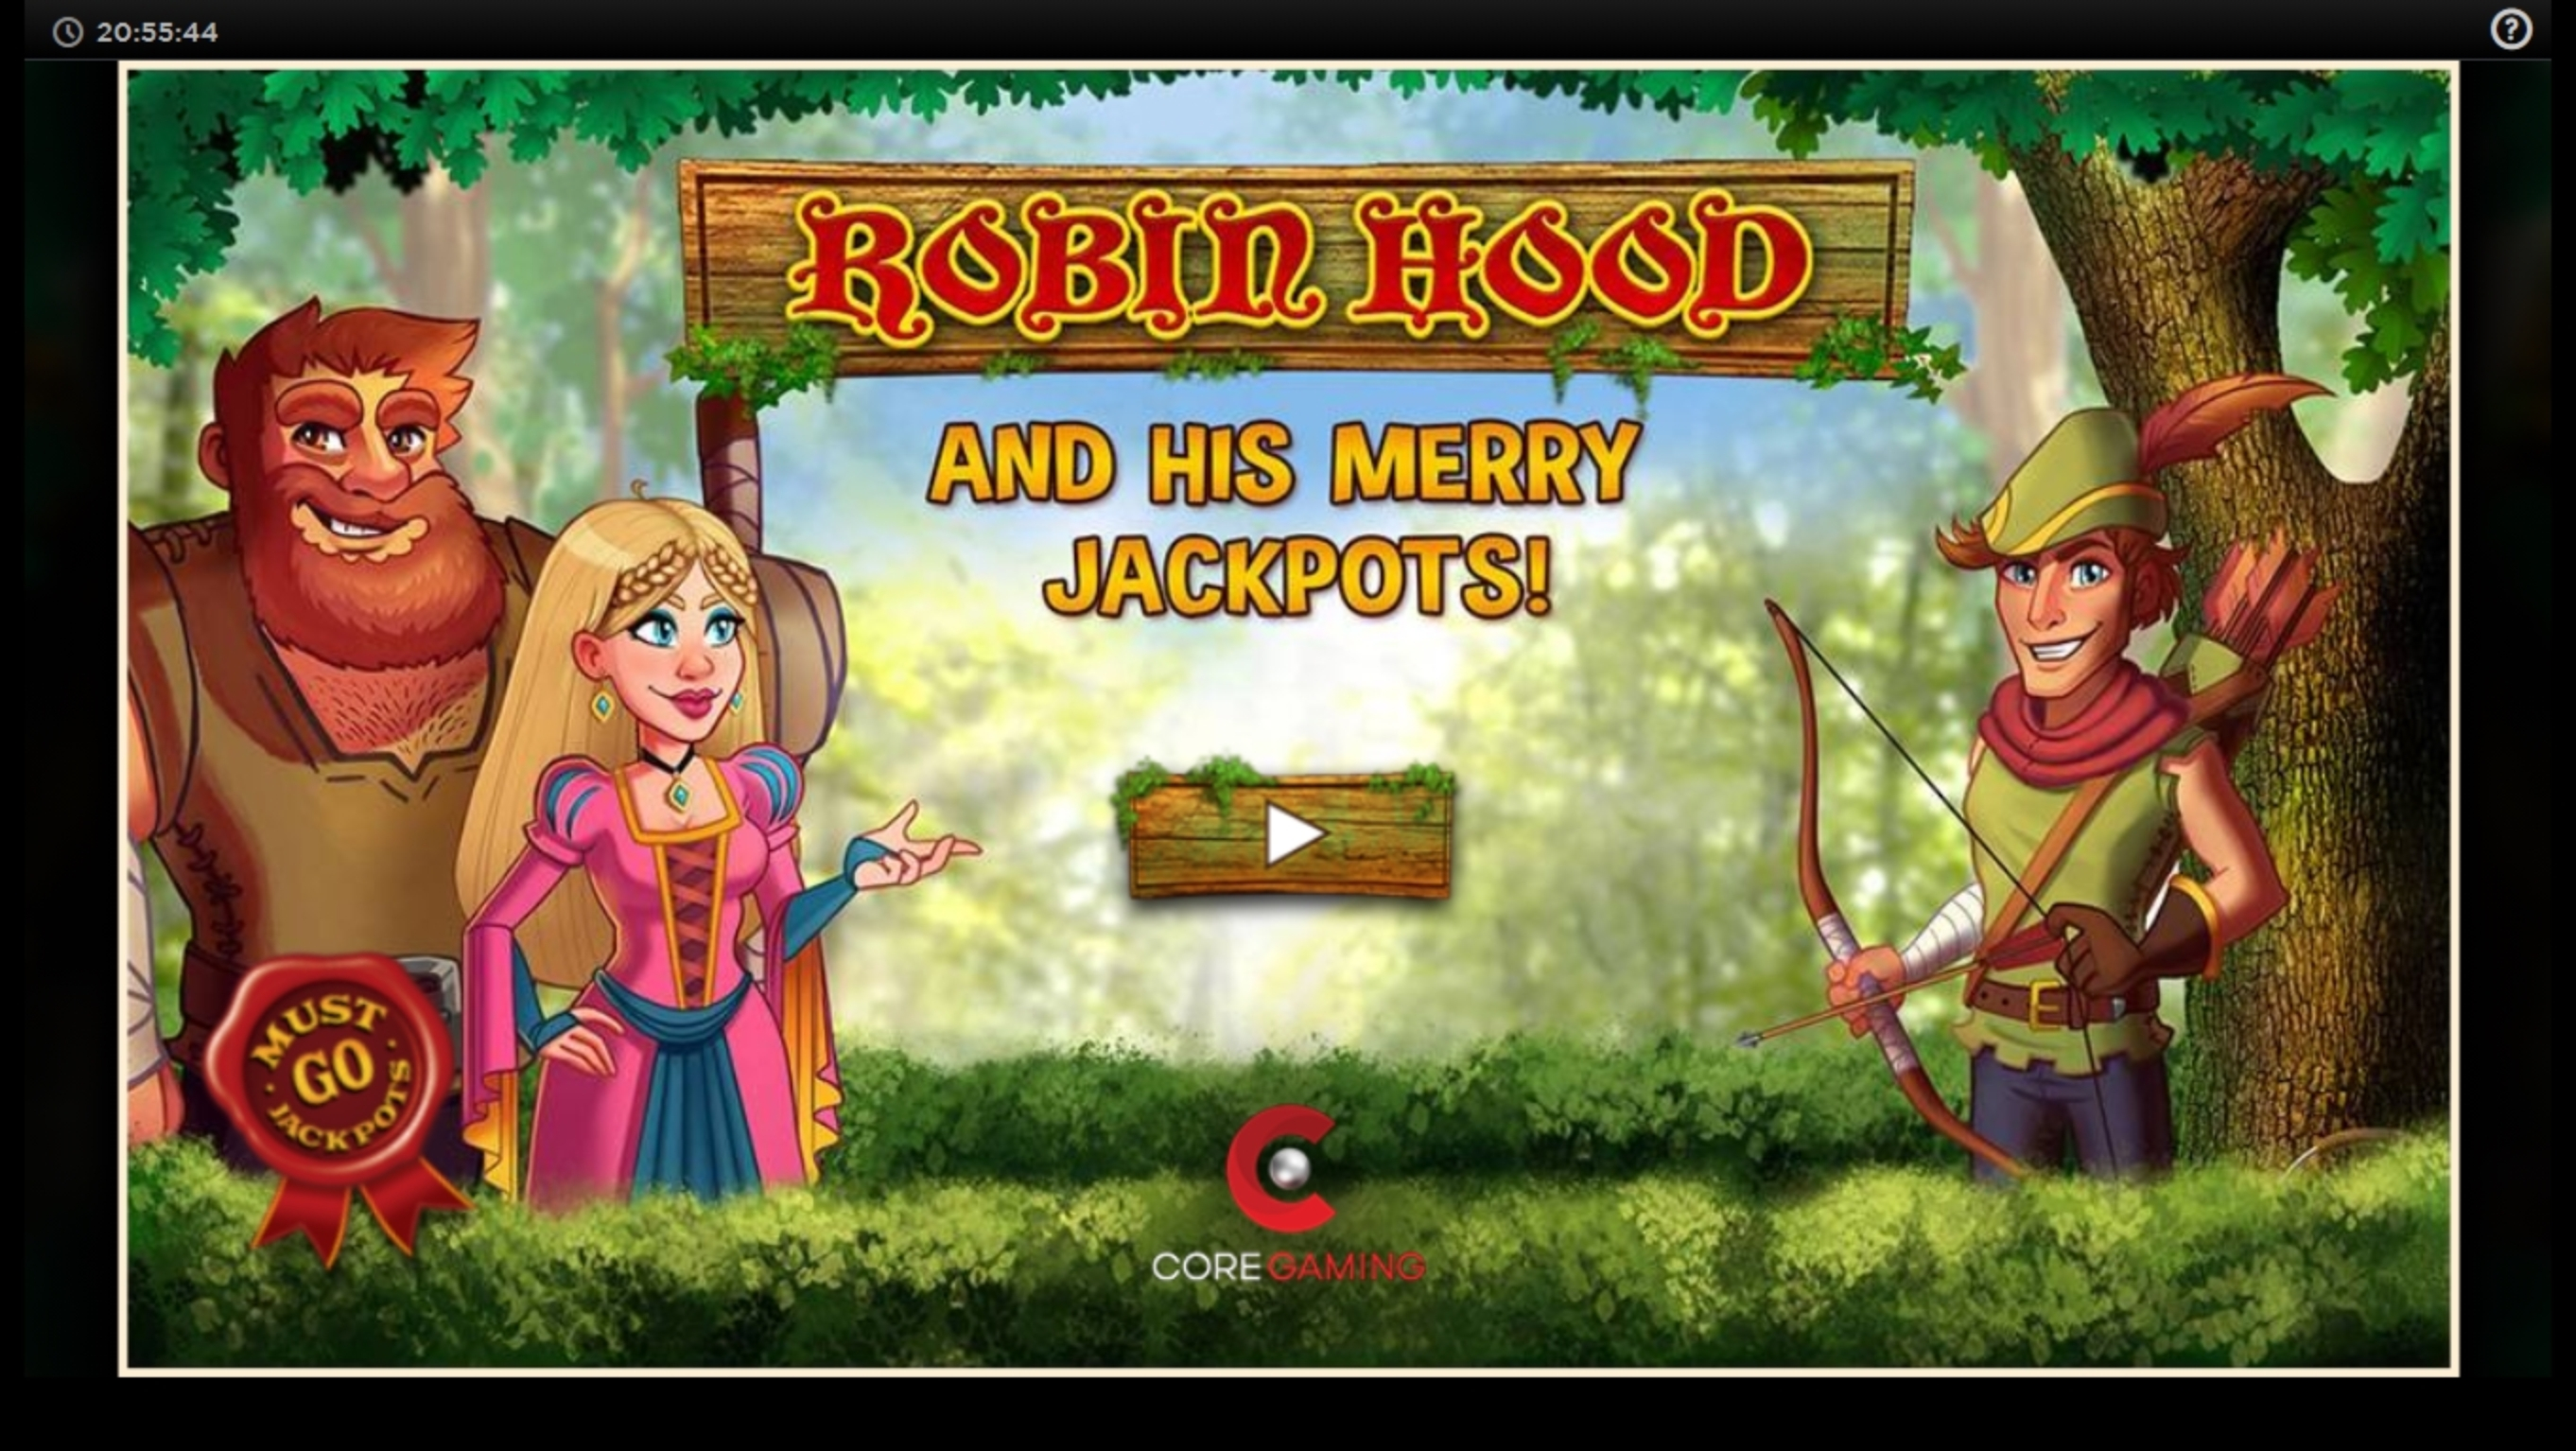 Play Robin Hood (CORE Gaming) Free Casino Slot Game by CORE Gaming